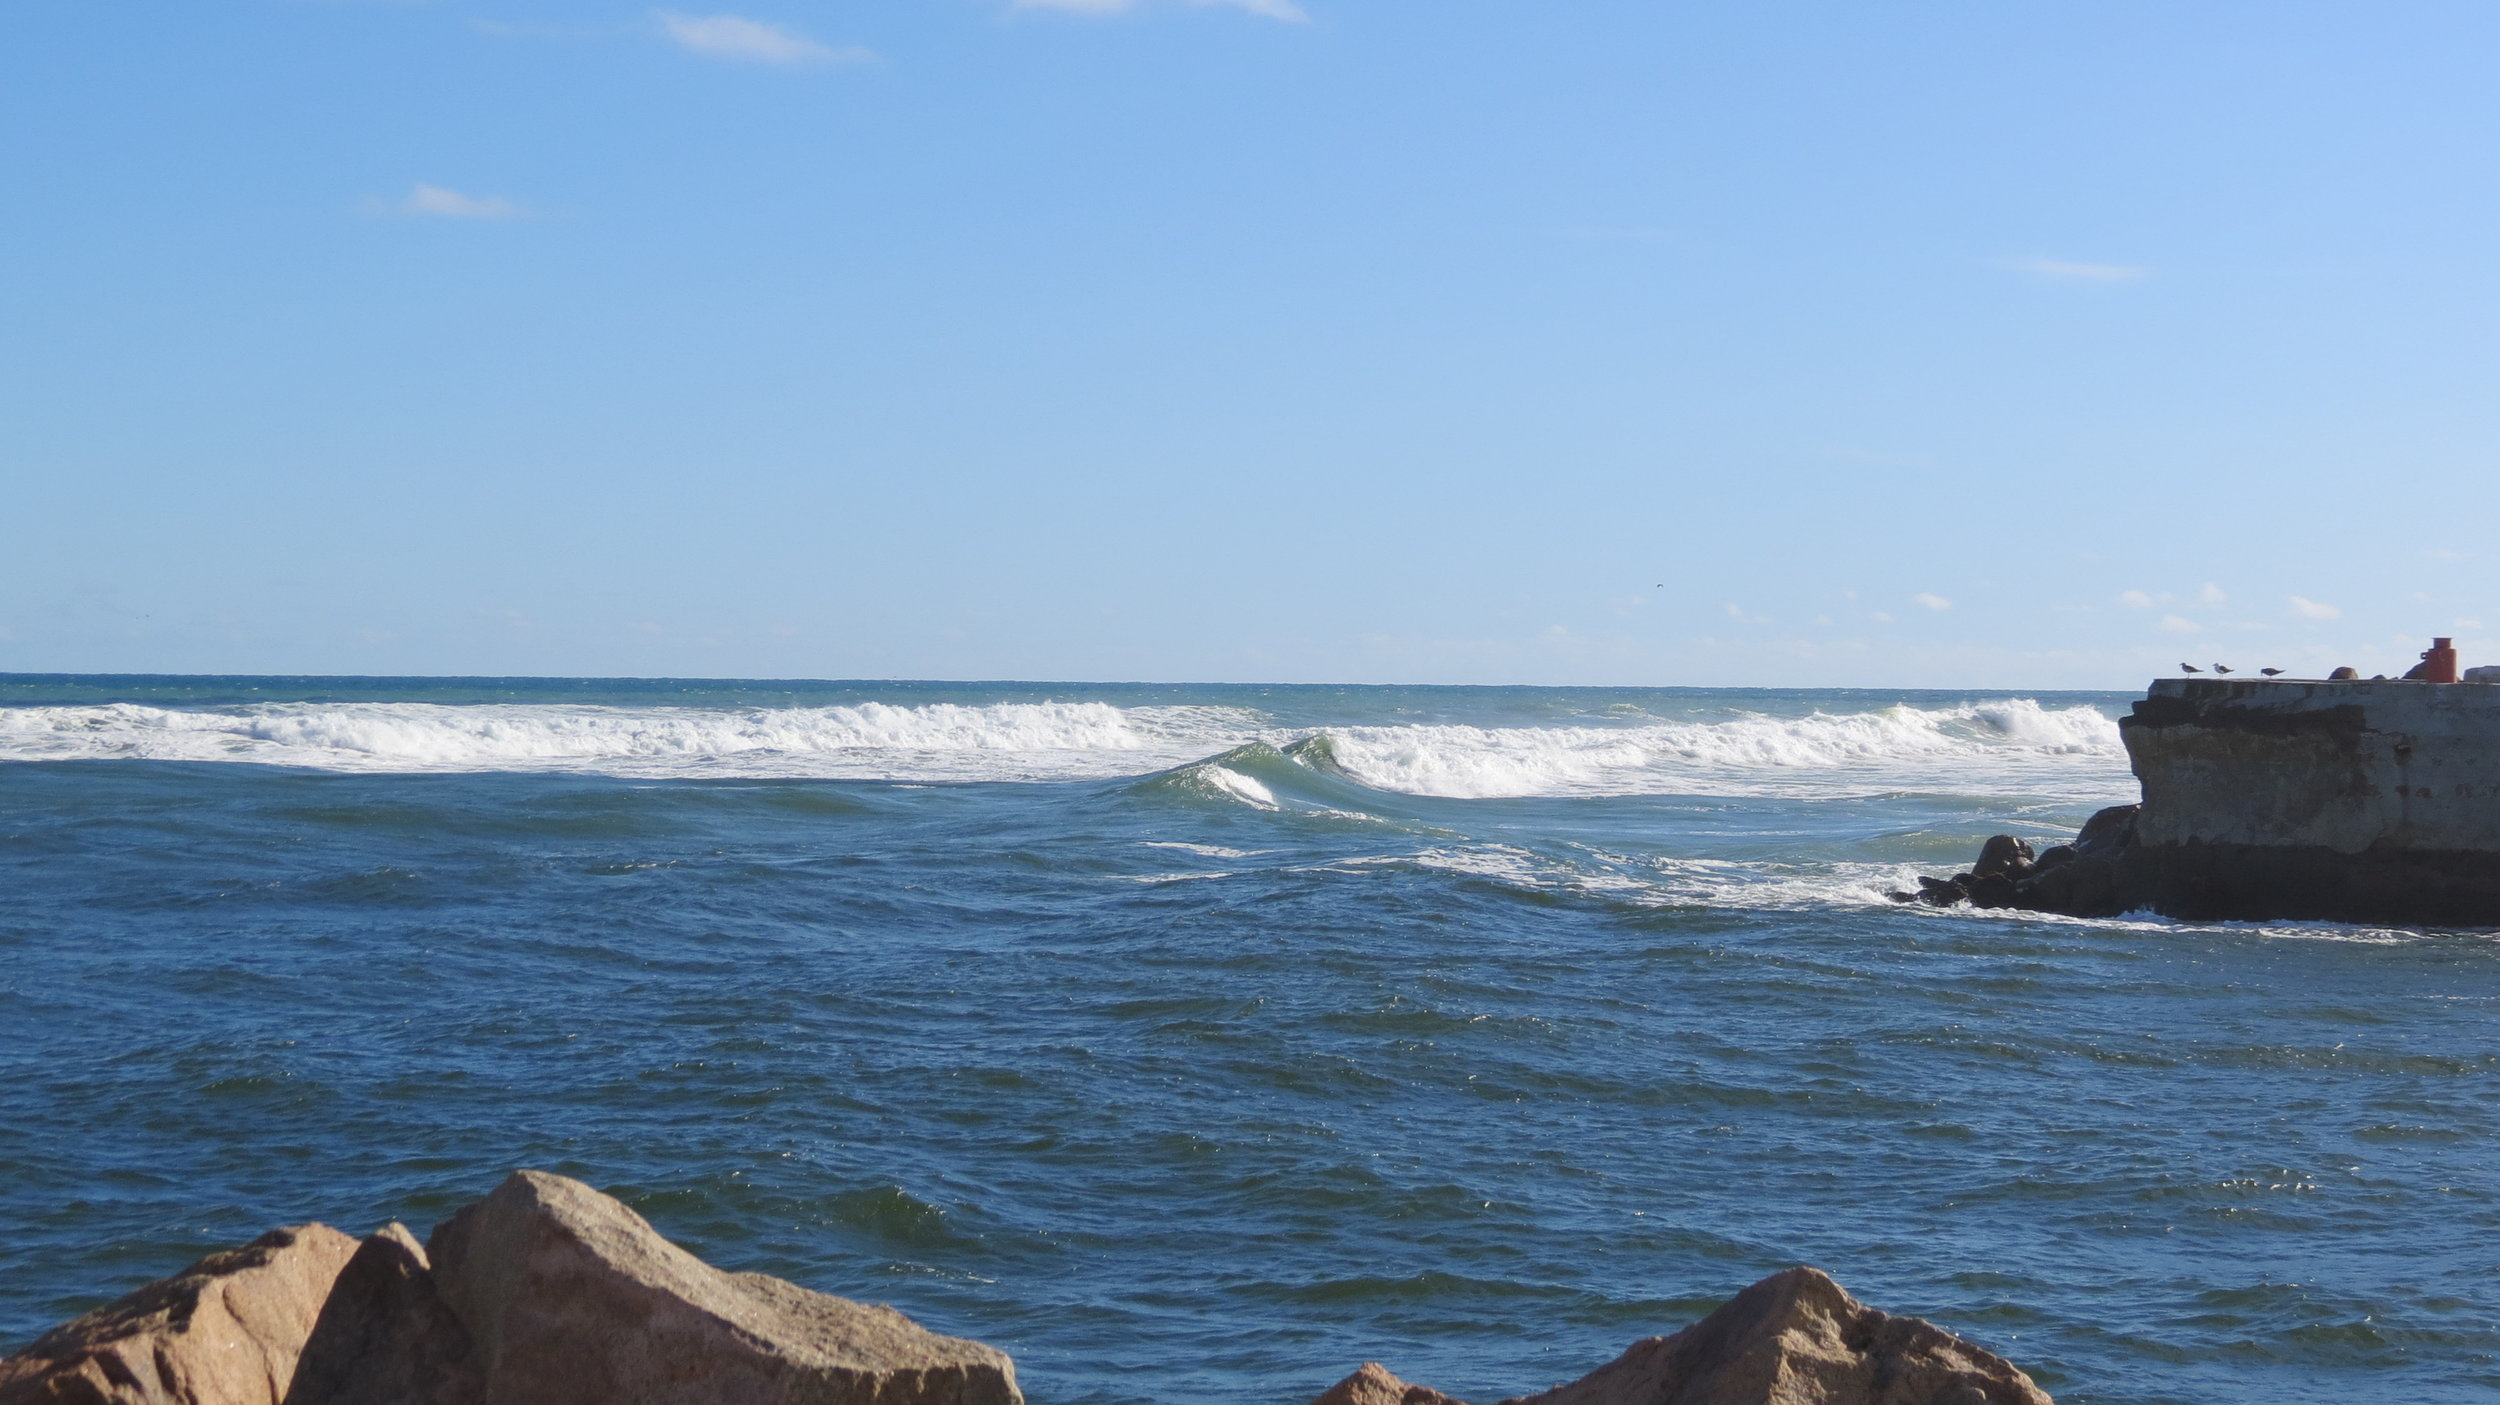 Leaving Lakes Entrance was an adrenaline rush ... yikes!